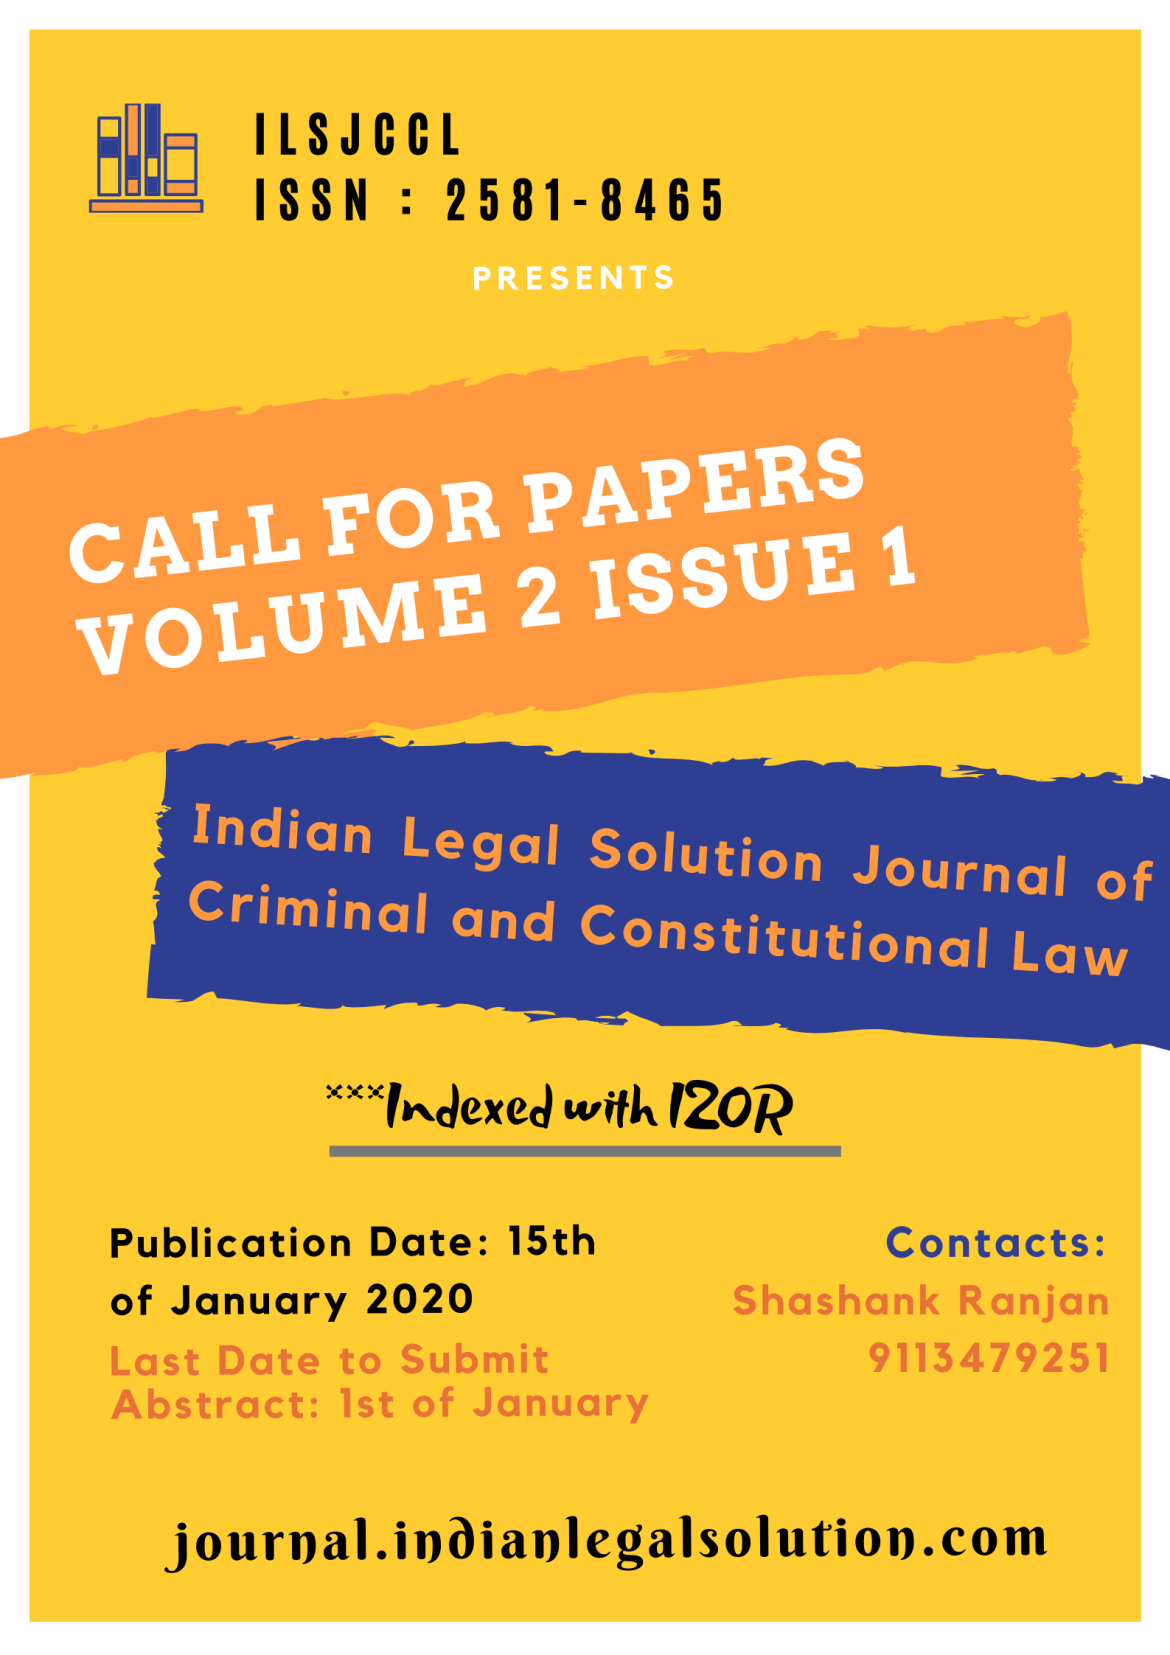 Cfp :Indian Legal Solution Journal of Criminal and Constitutional Law [Vol 2, Issue 1] ISSN : 2581-8465.